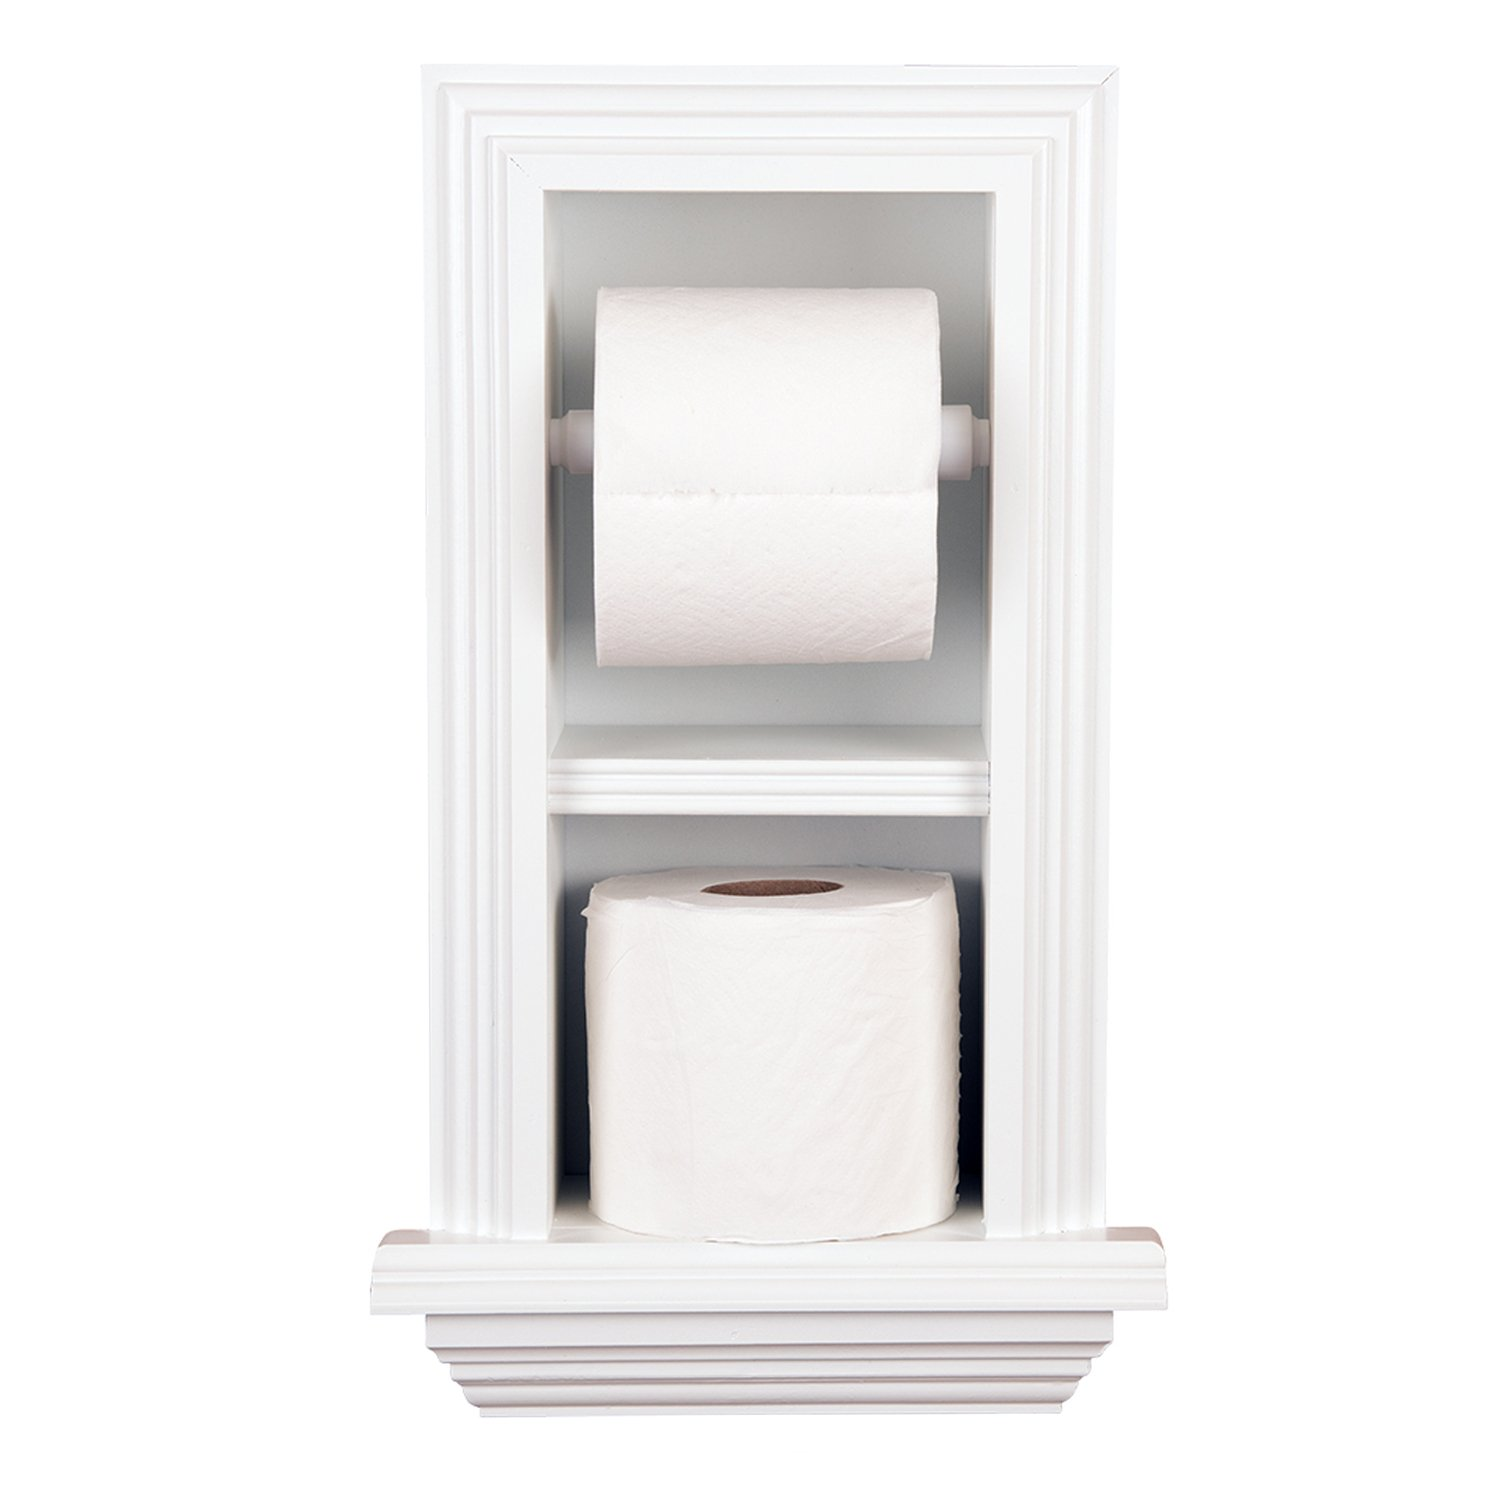 WG Wood Products Series Recessed Double TP Holder-Multiple Finishes, White